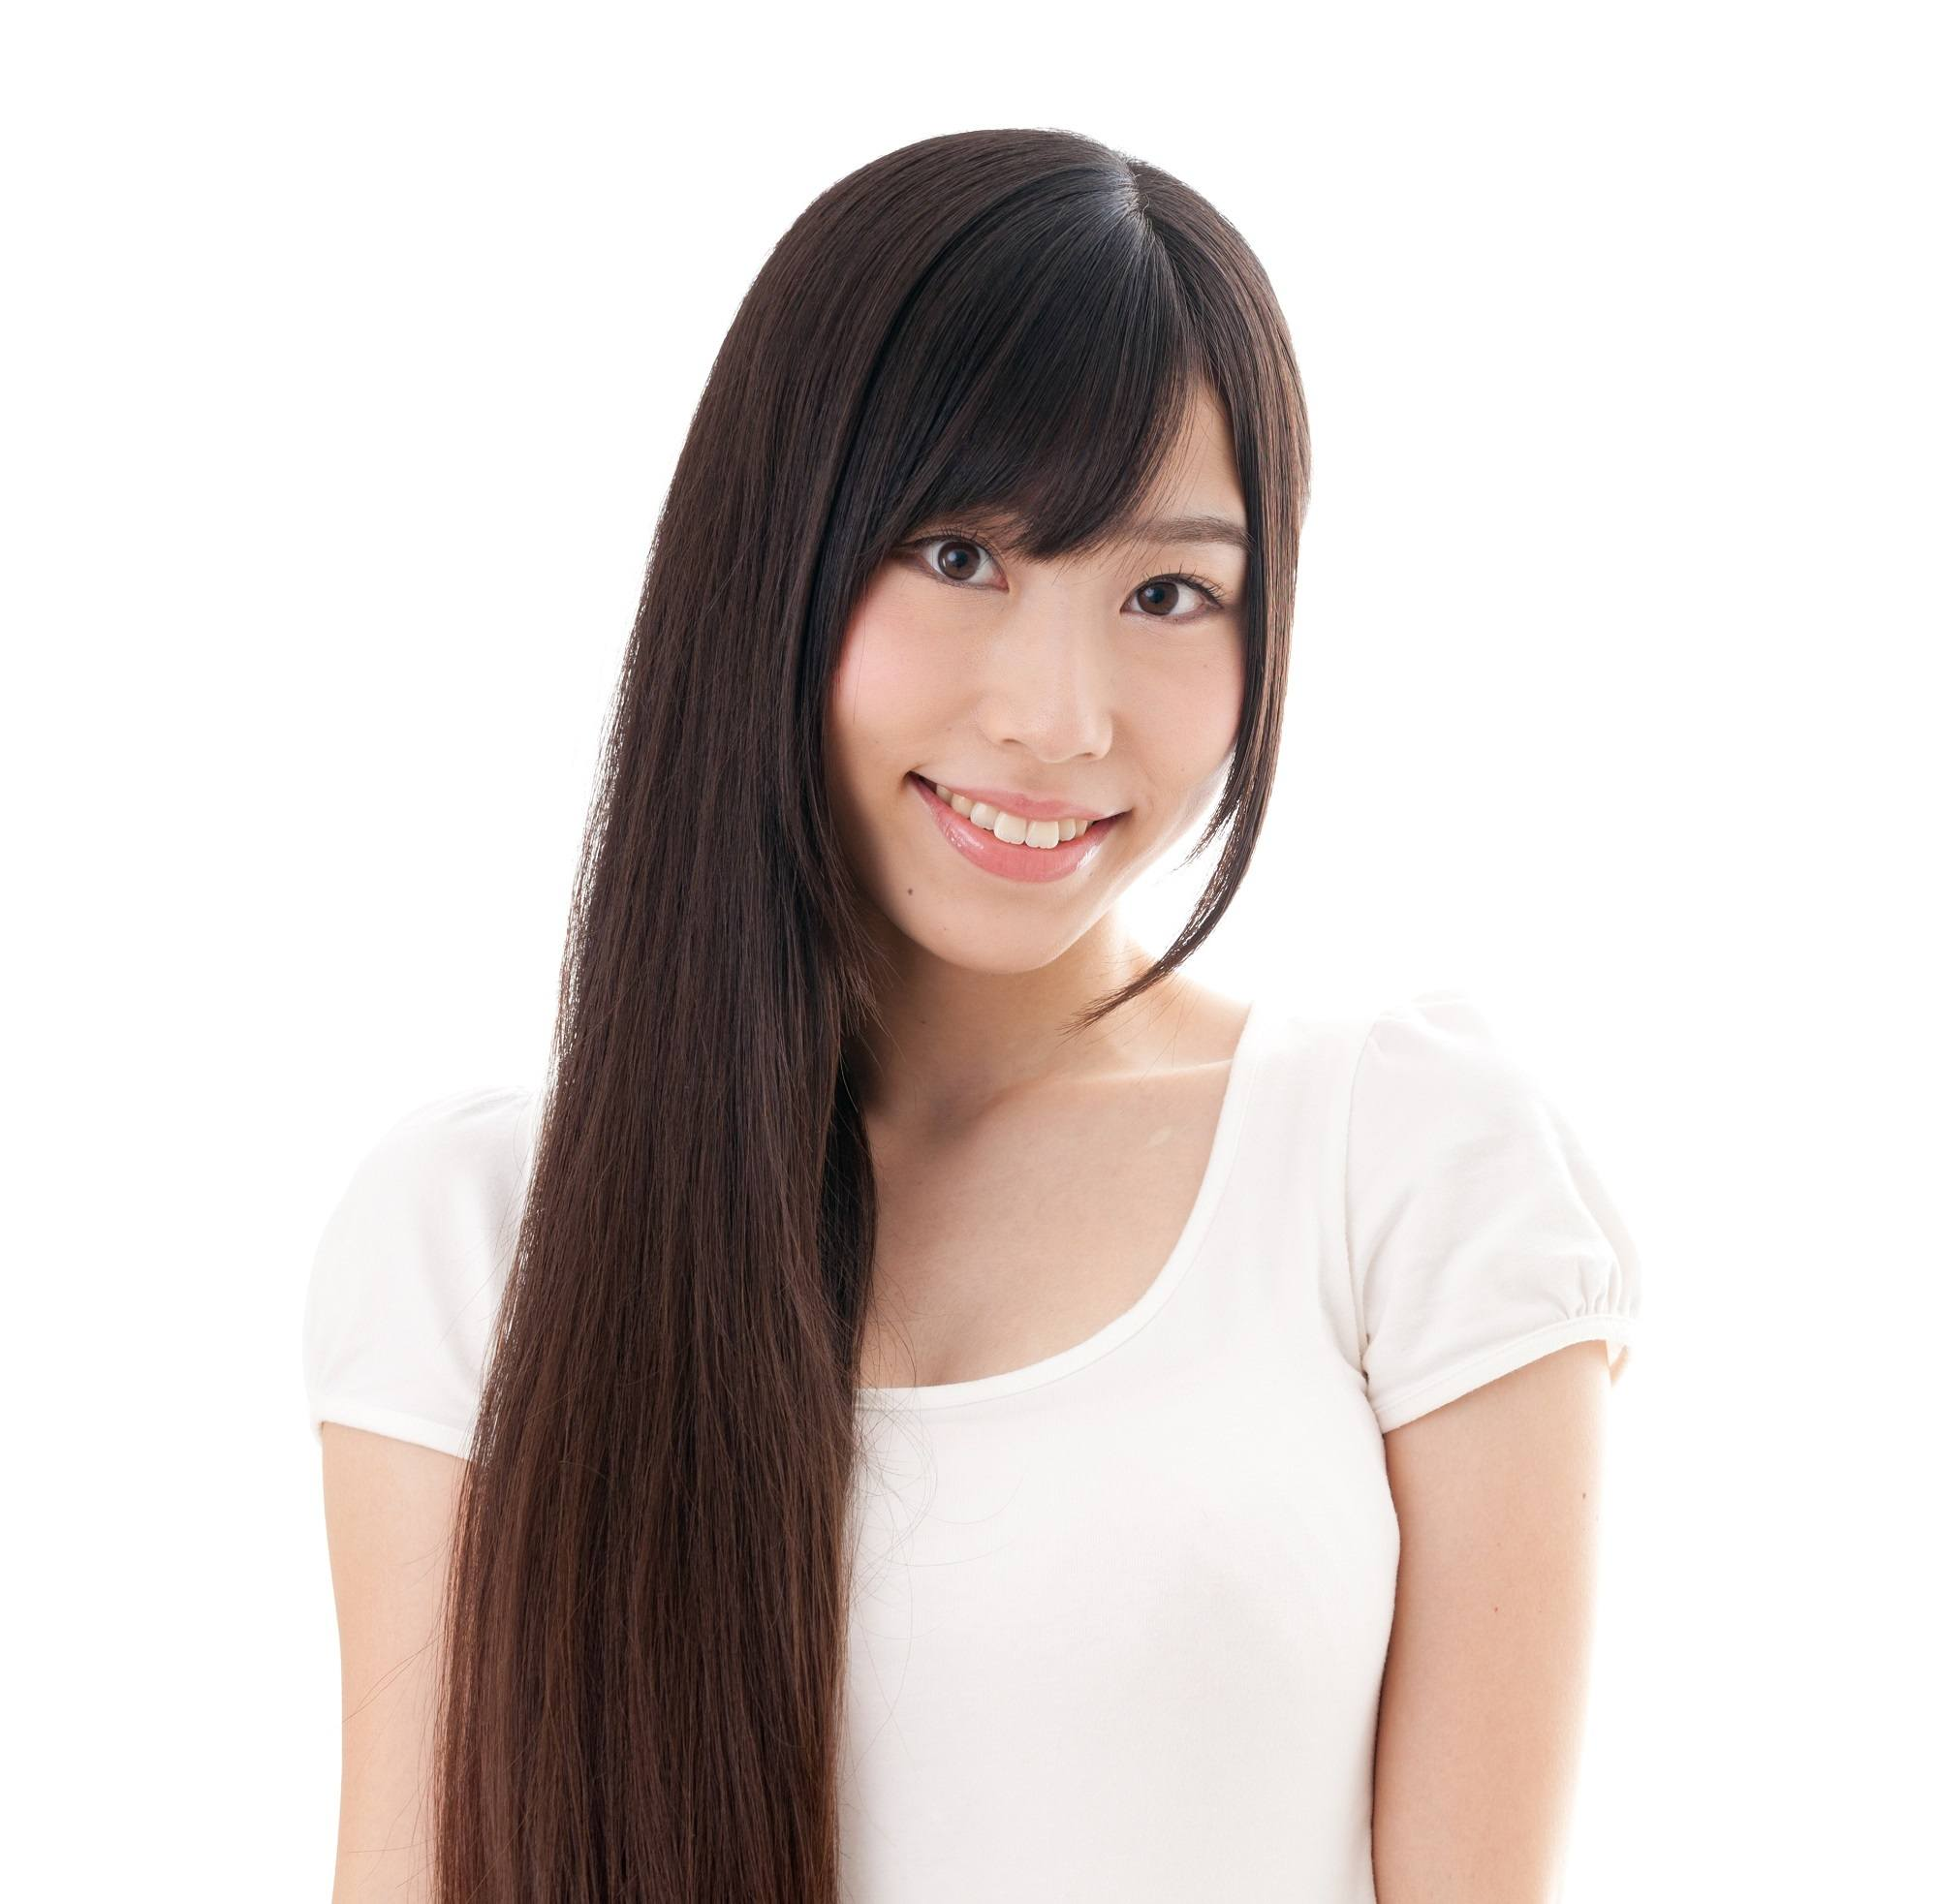 Best haircuts for long hair: Asian woman wearing a white shirt with long straight black hair and curtain bangs against while background